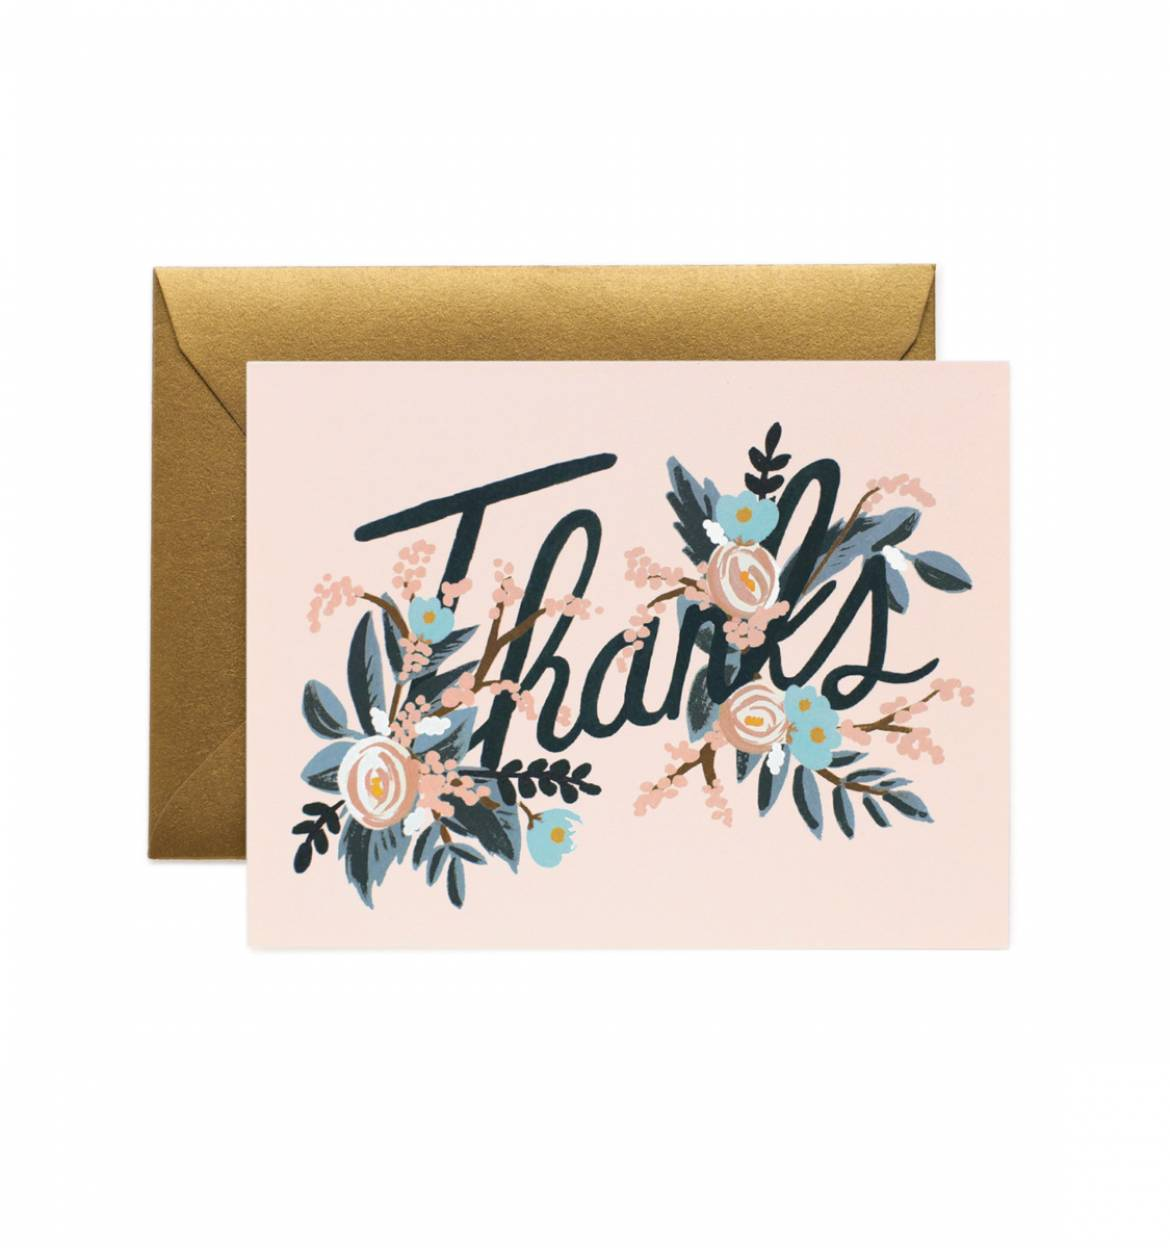 Rifle paper co woodland thank you card papercut woodland thank you card papercut m4hsunfo